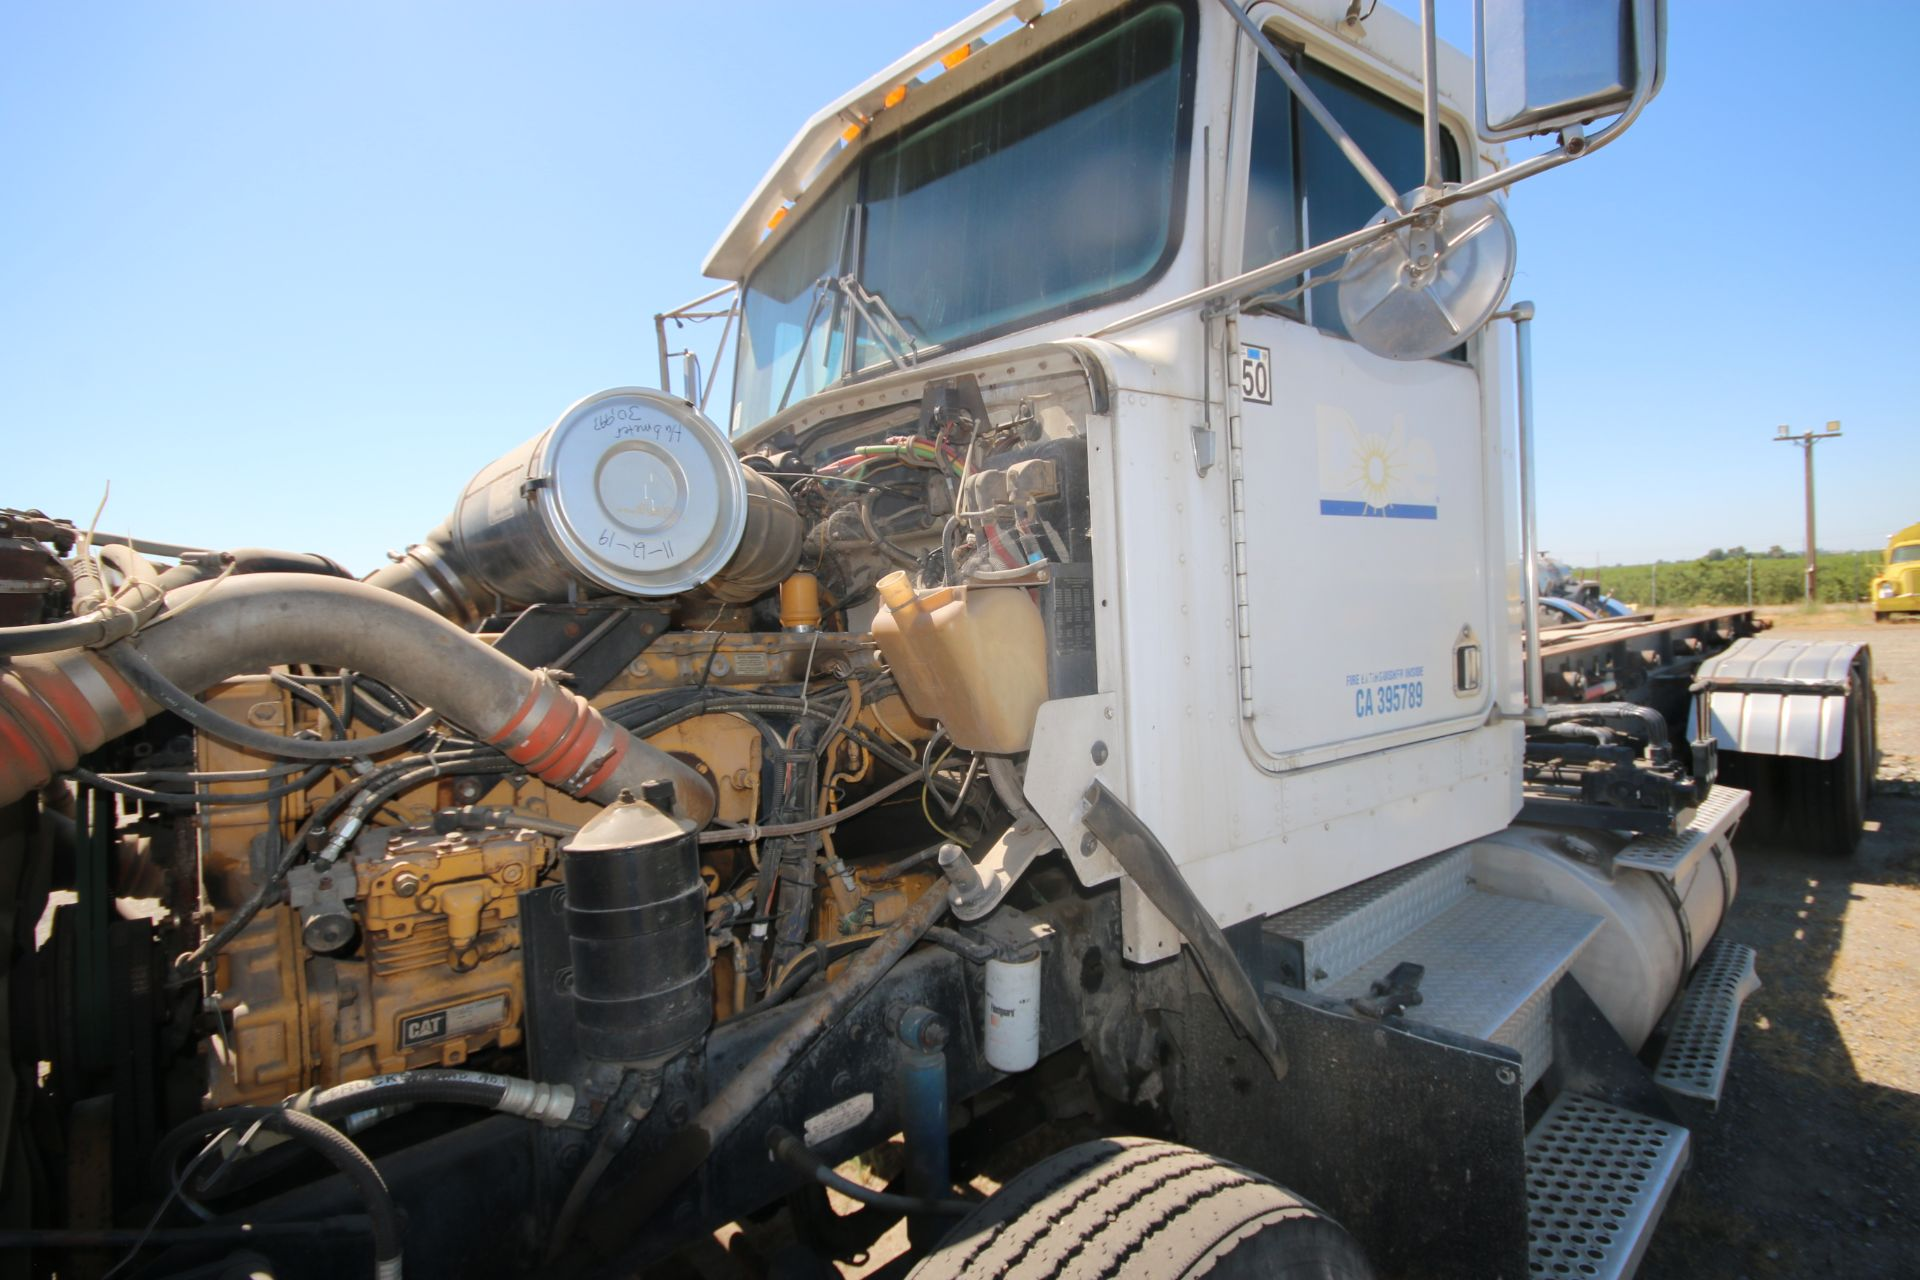 1996 Kenworth 3-Axle Roll-Off Straight Truck, VIN #: 1XKDDB9XOTS687107, with 24,722 Miles, License - Image 21 of 30